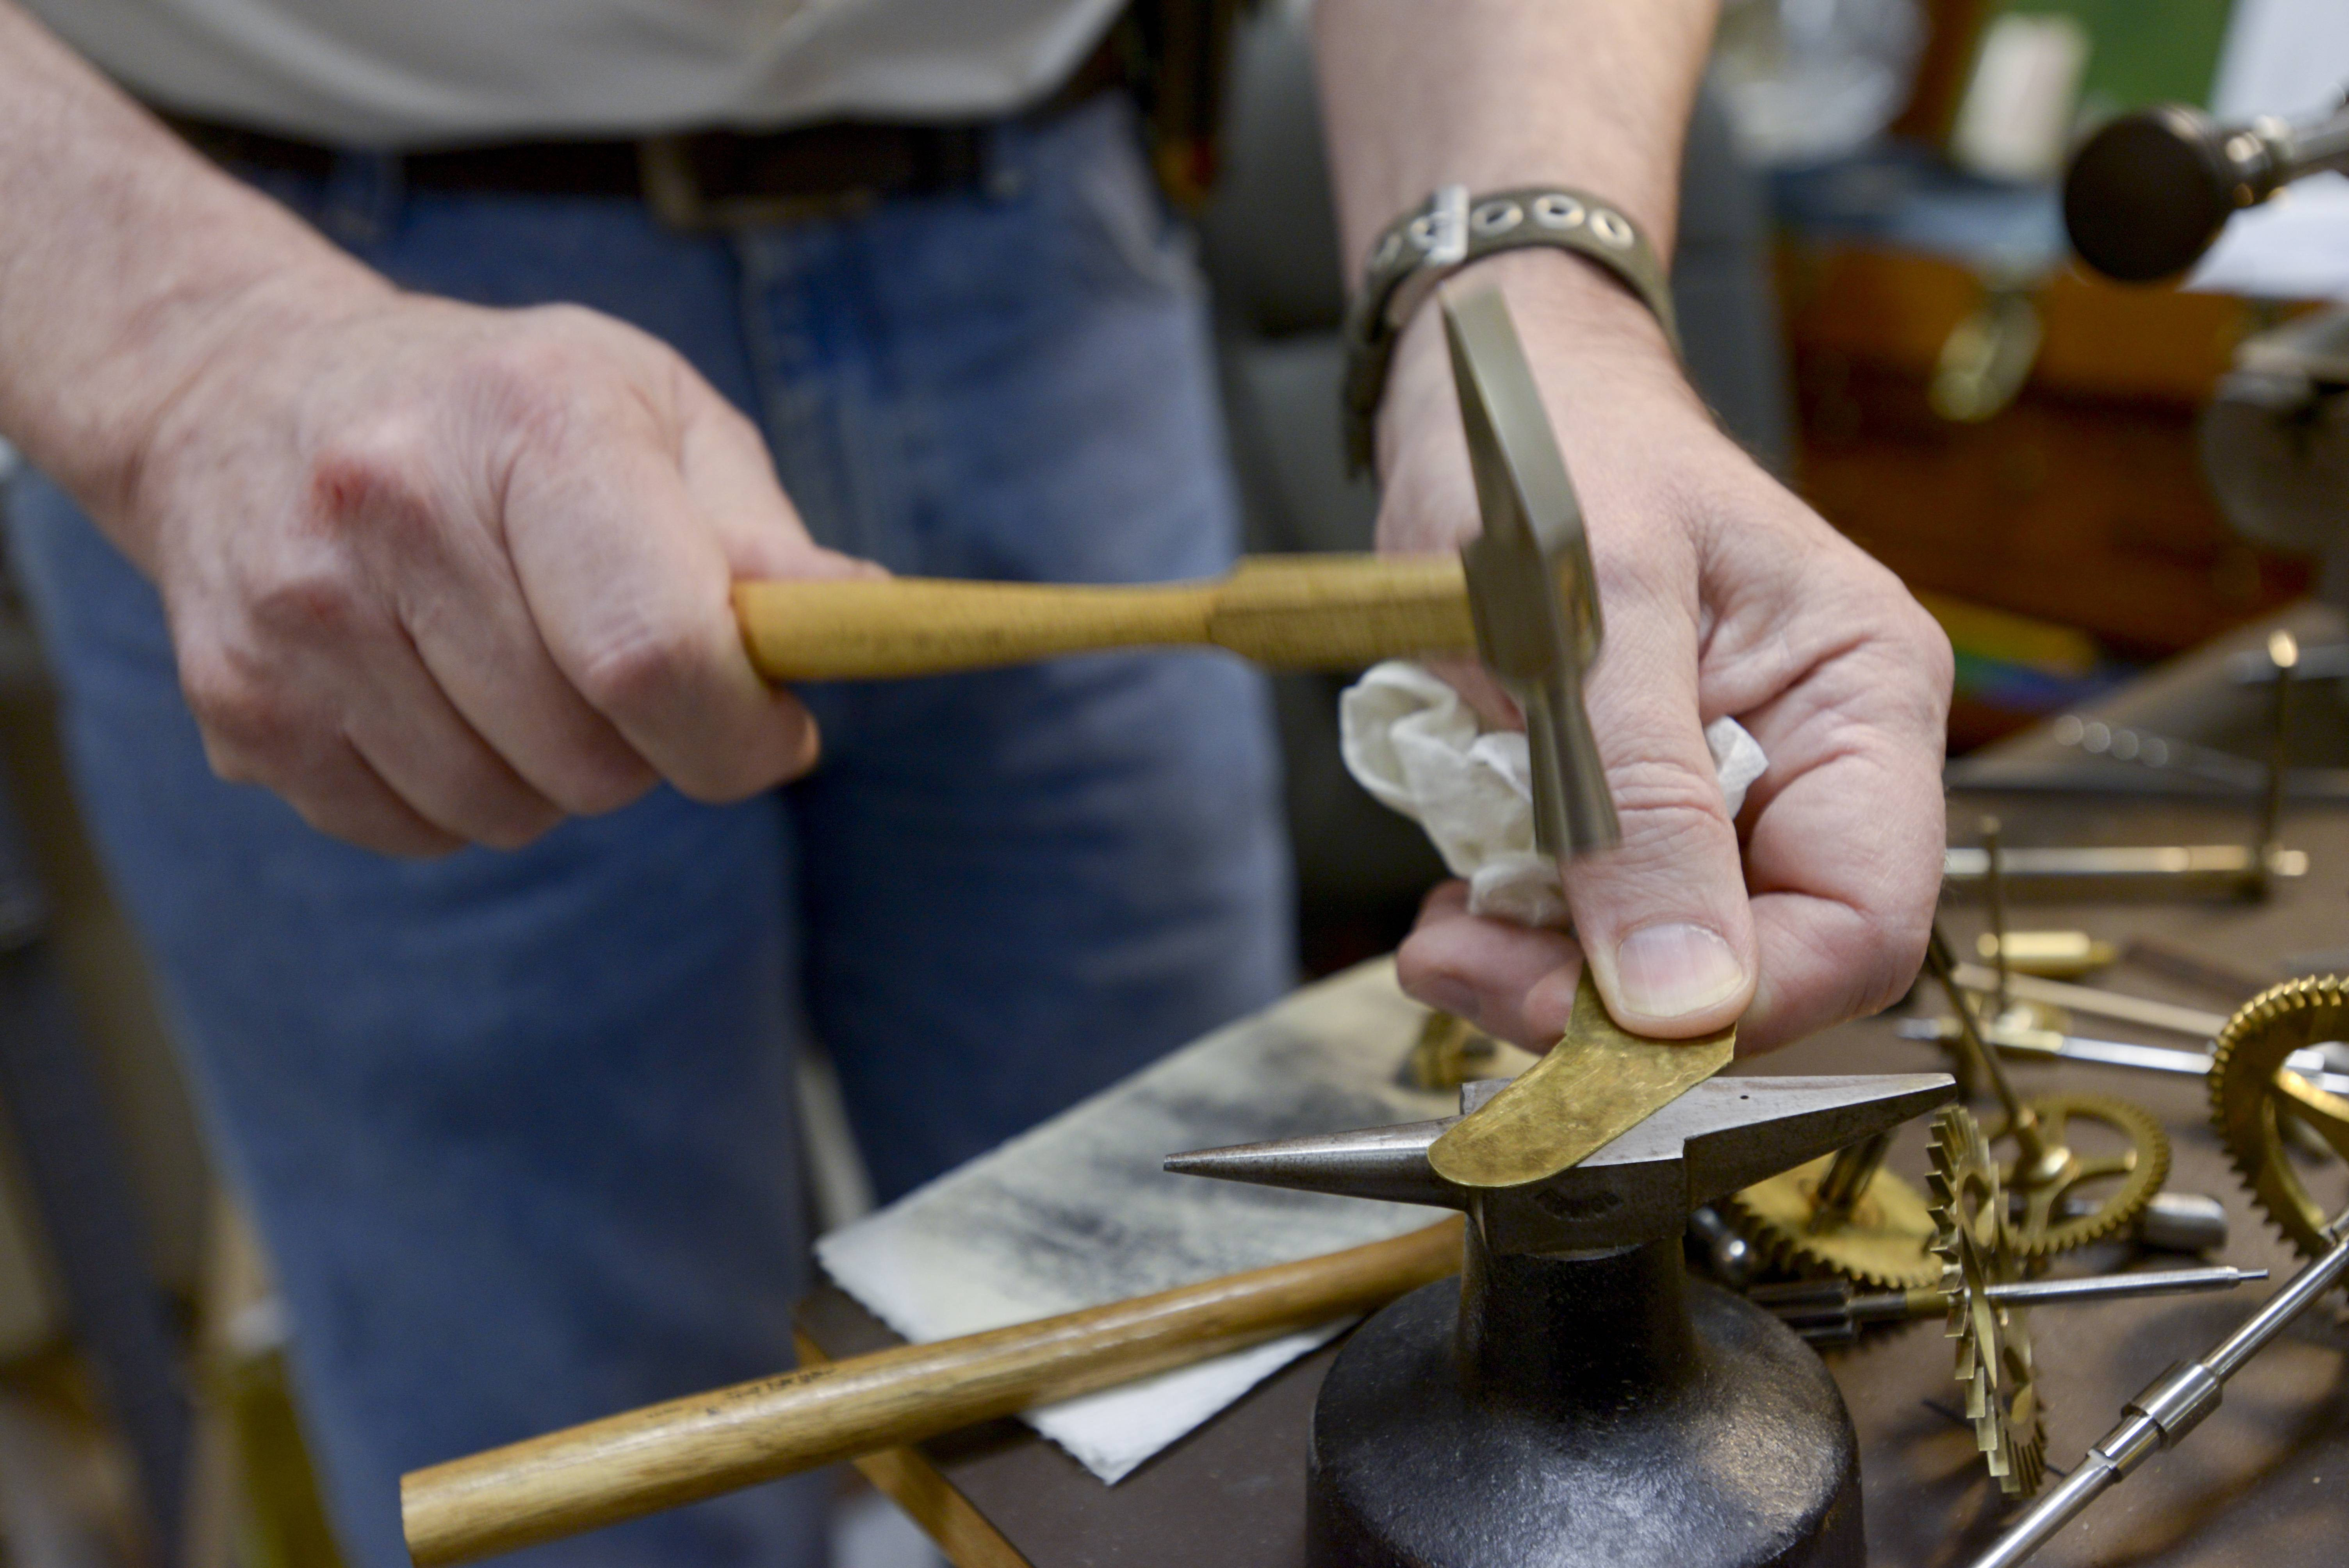 Lachapelle uses a mini anvil and hammer to temper a brass part of an antique clock.